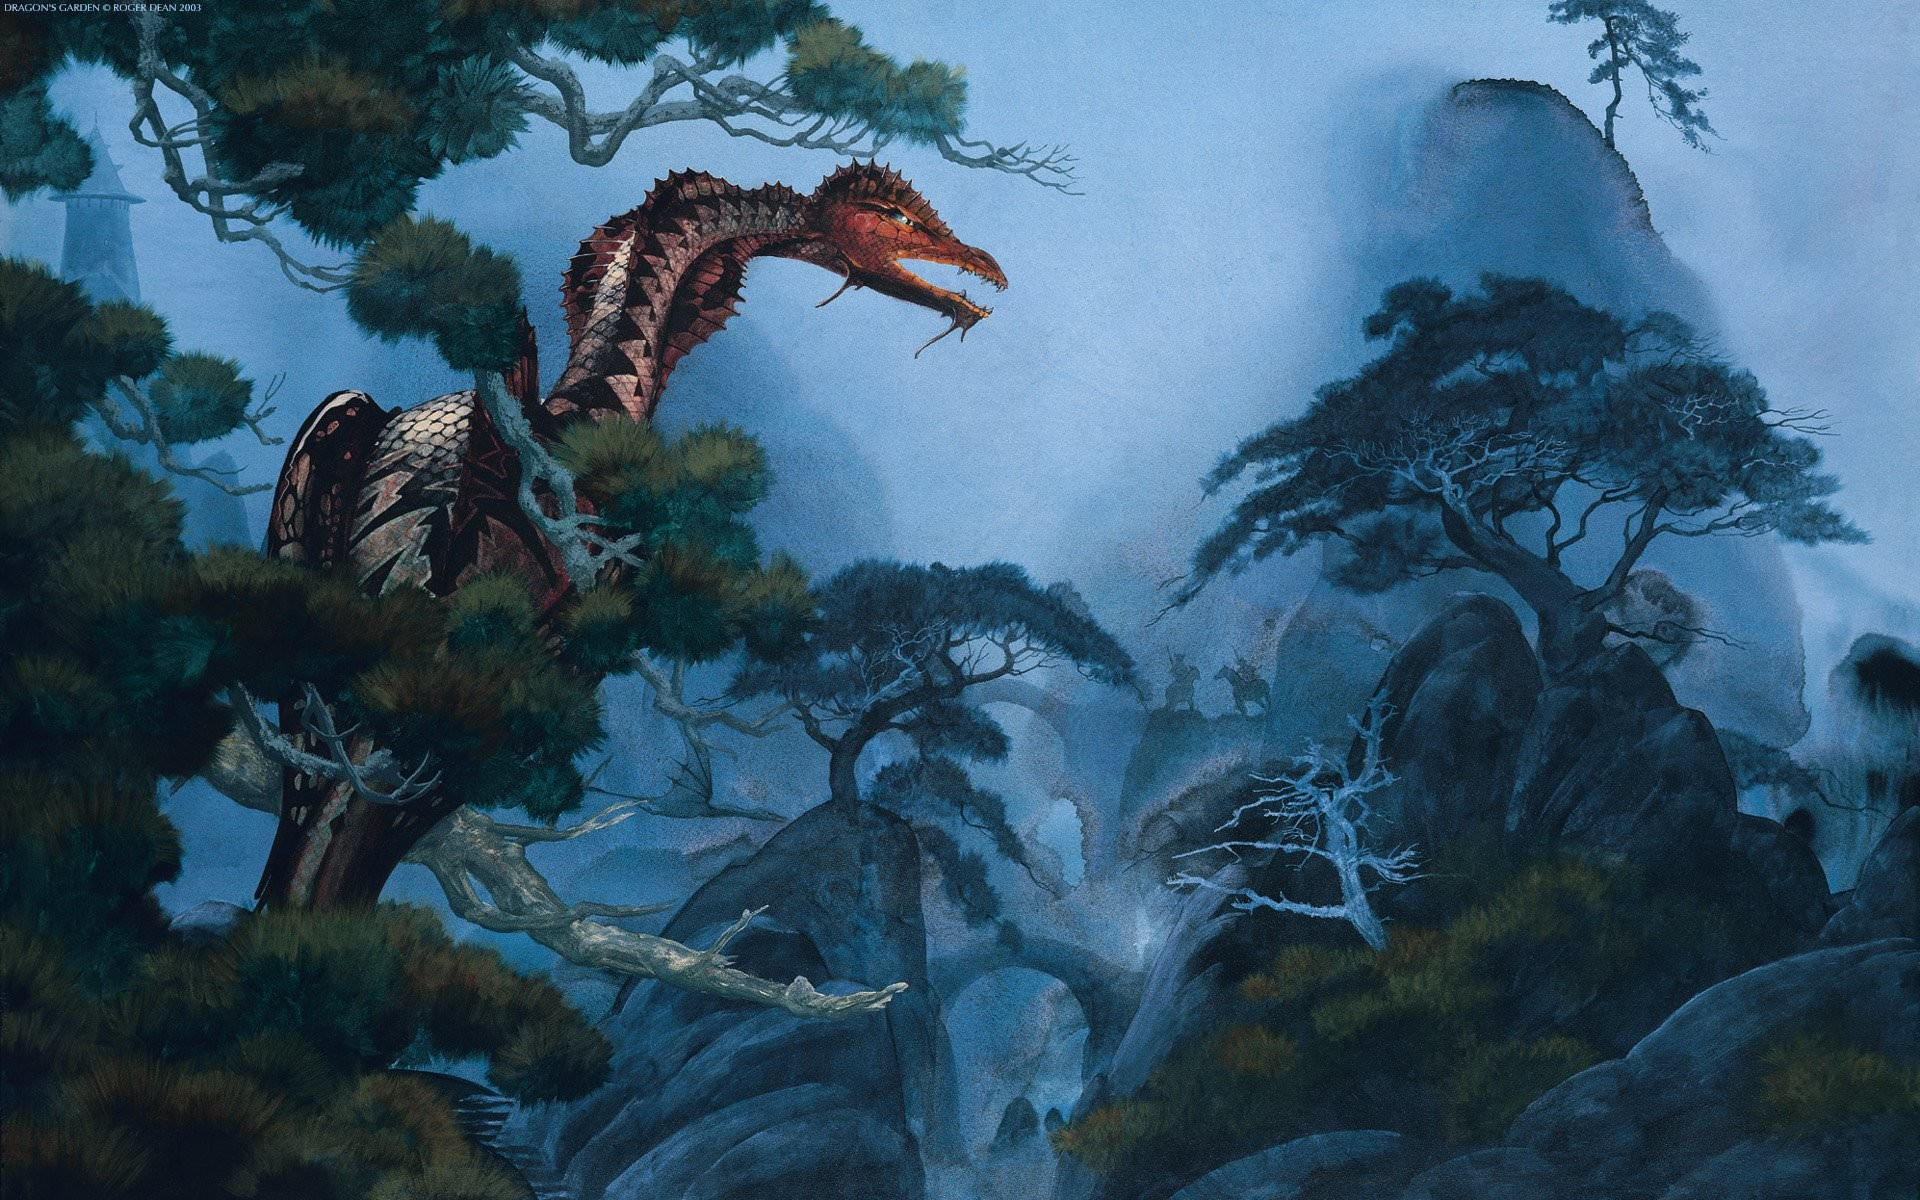 1920x1200 Roger Dean Surreal Wallpapers. by DrGo0fyJul 30. Load 10 more imagesGrid  view